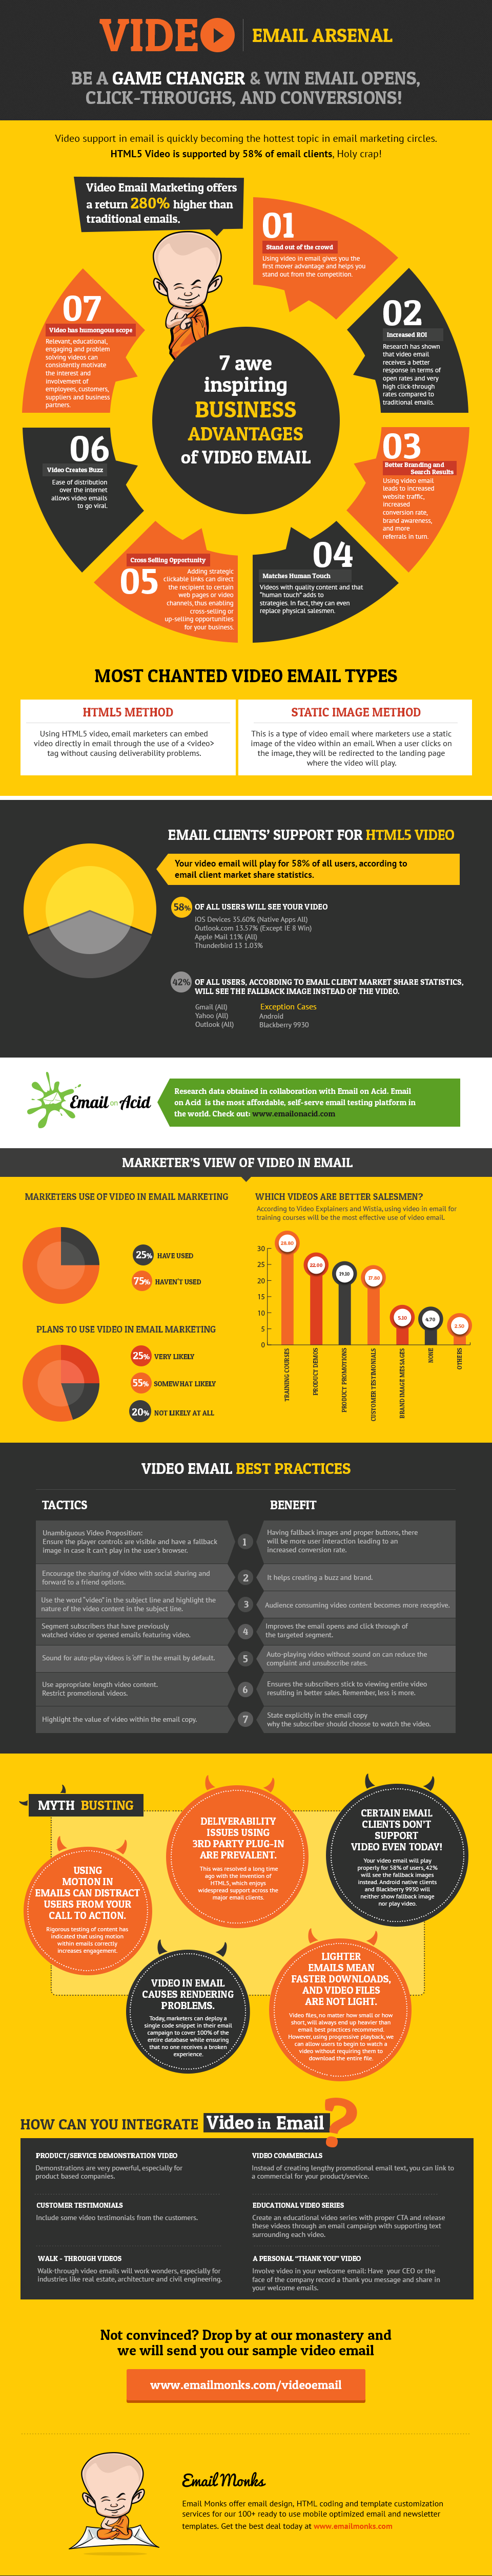 video-email-infographic